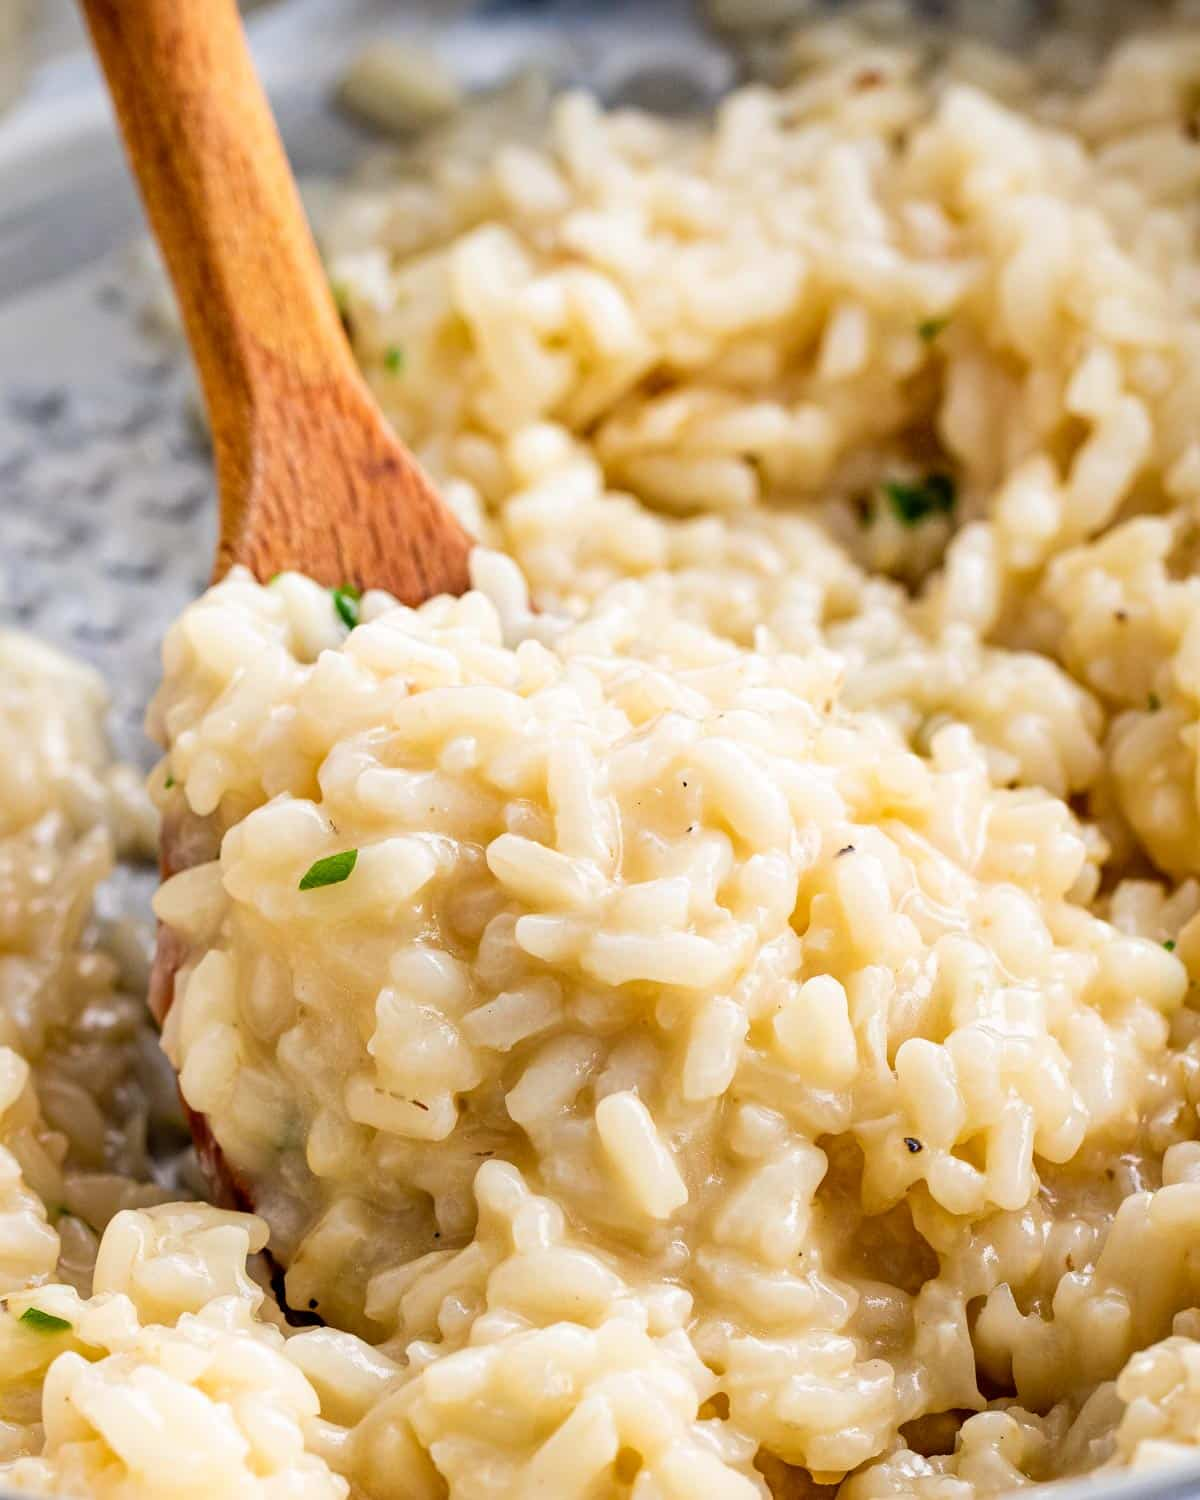 a wooden spoon holding some risotto in a pan.